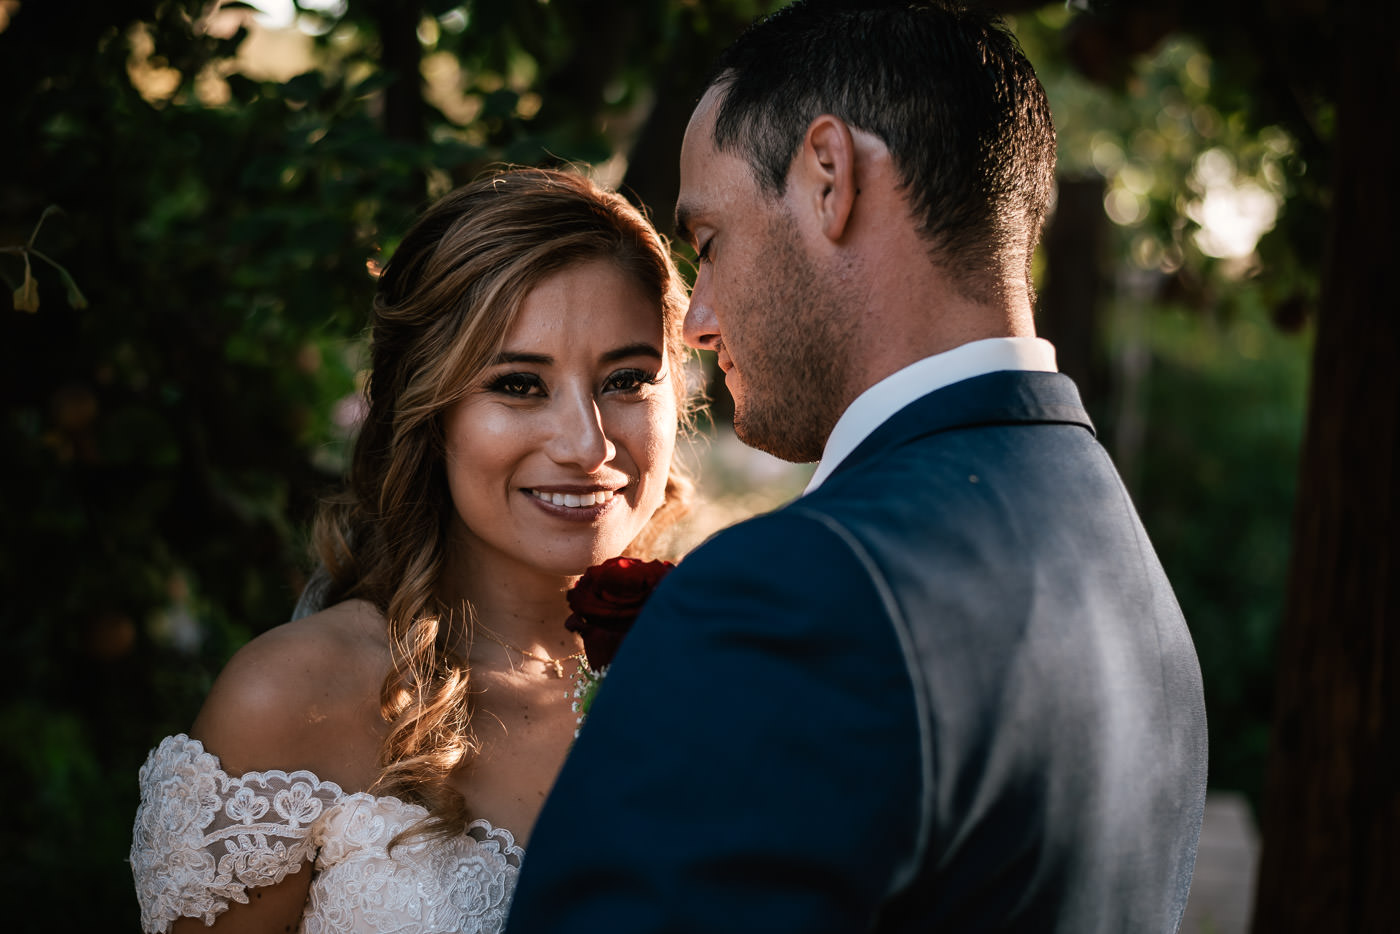 Newly married bride smiles with happiness after her rustic wedding at The Homestead at Wilshire Ranch.